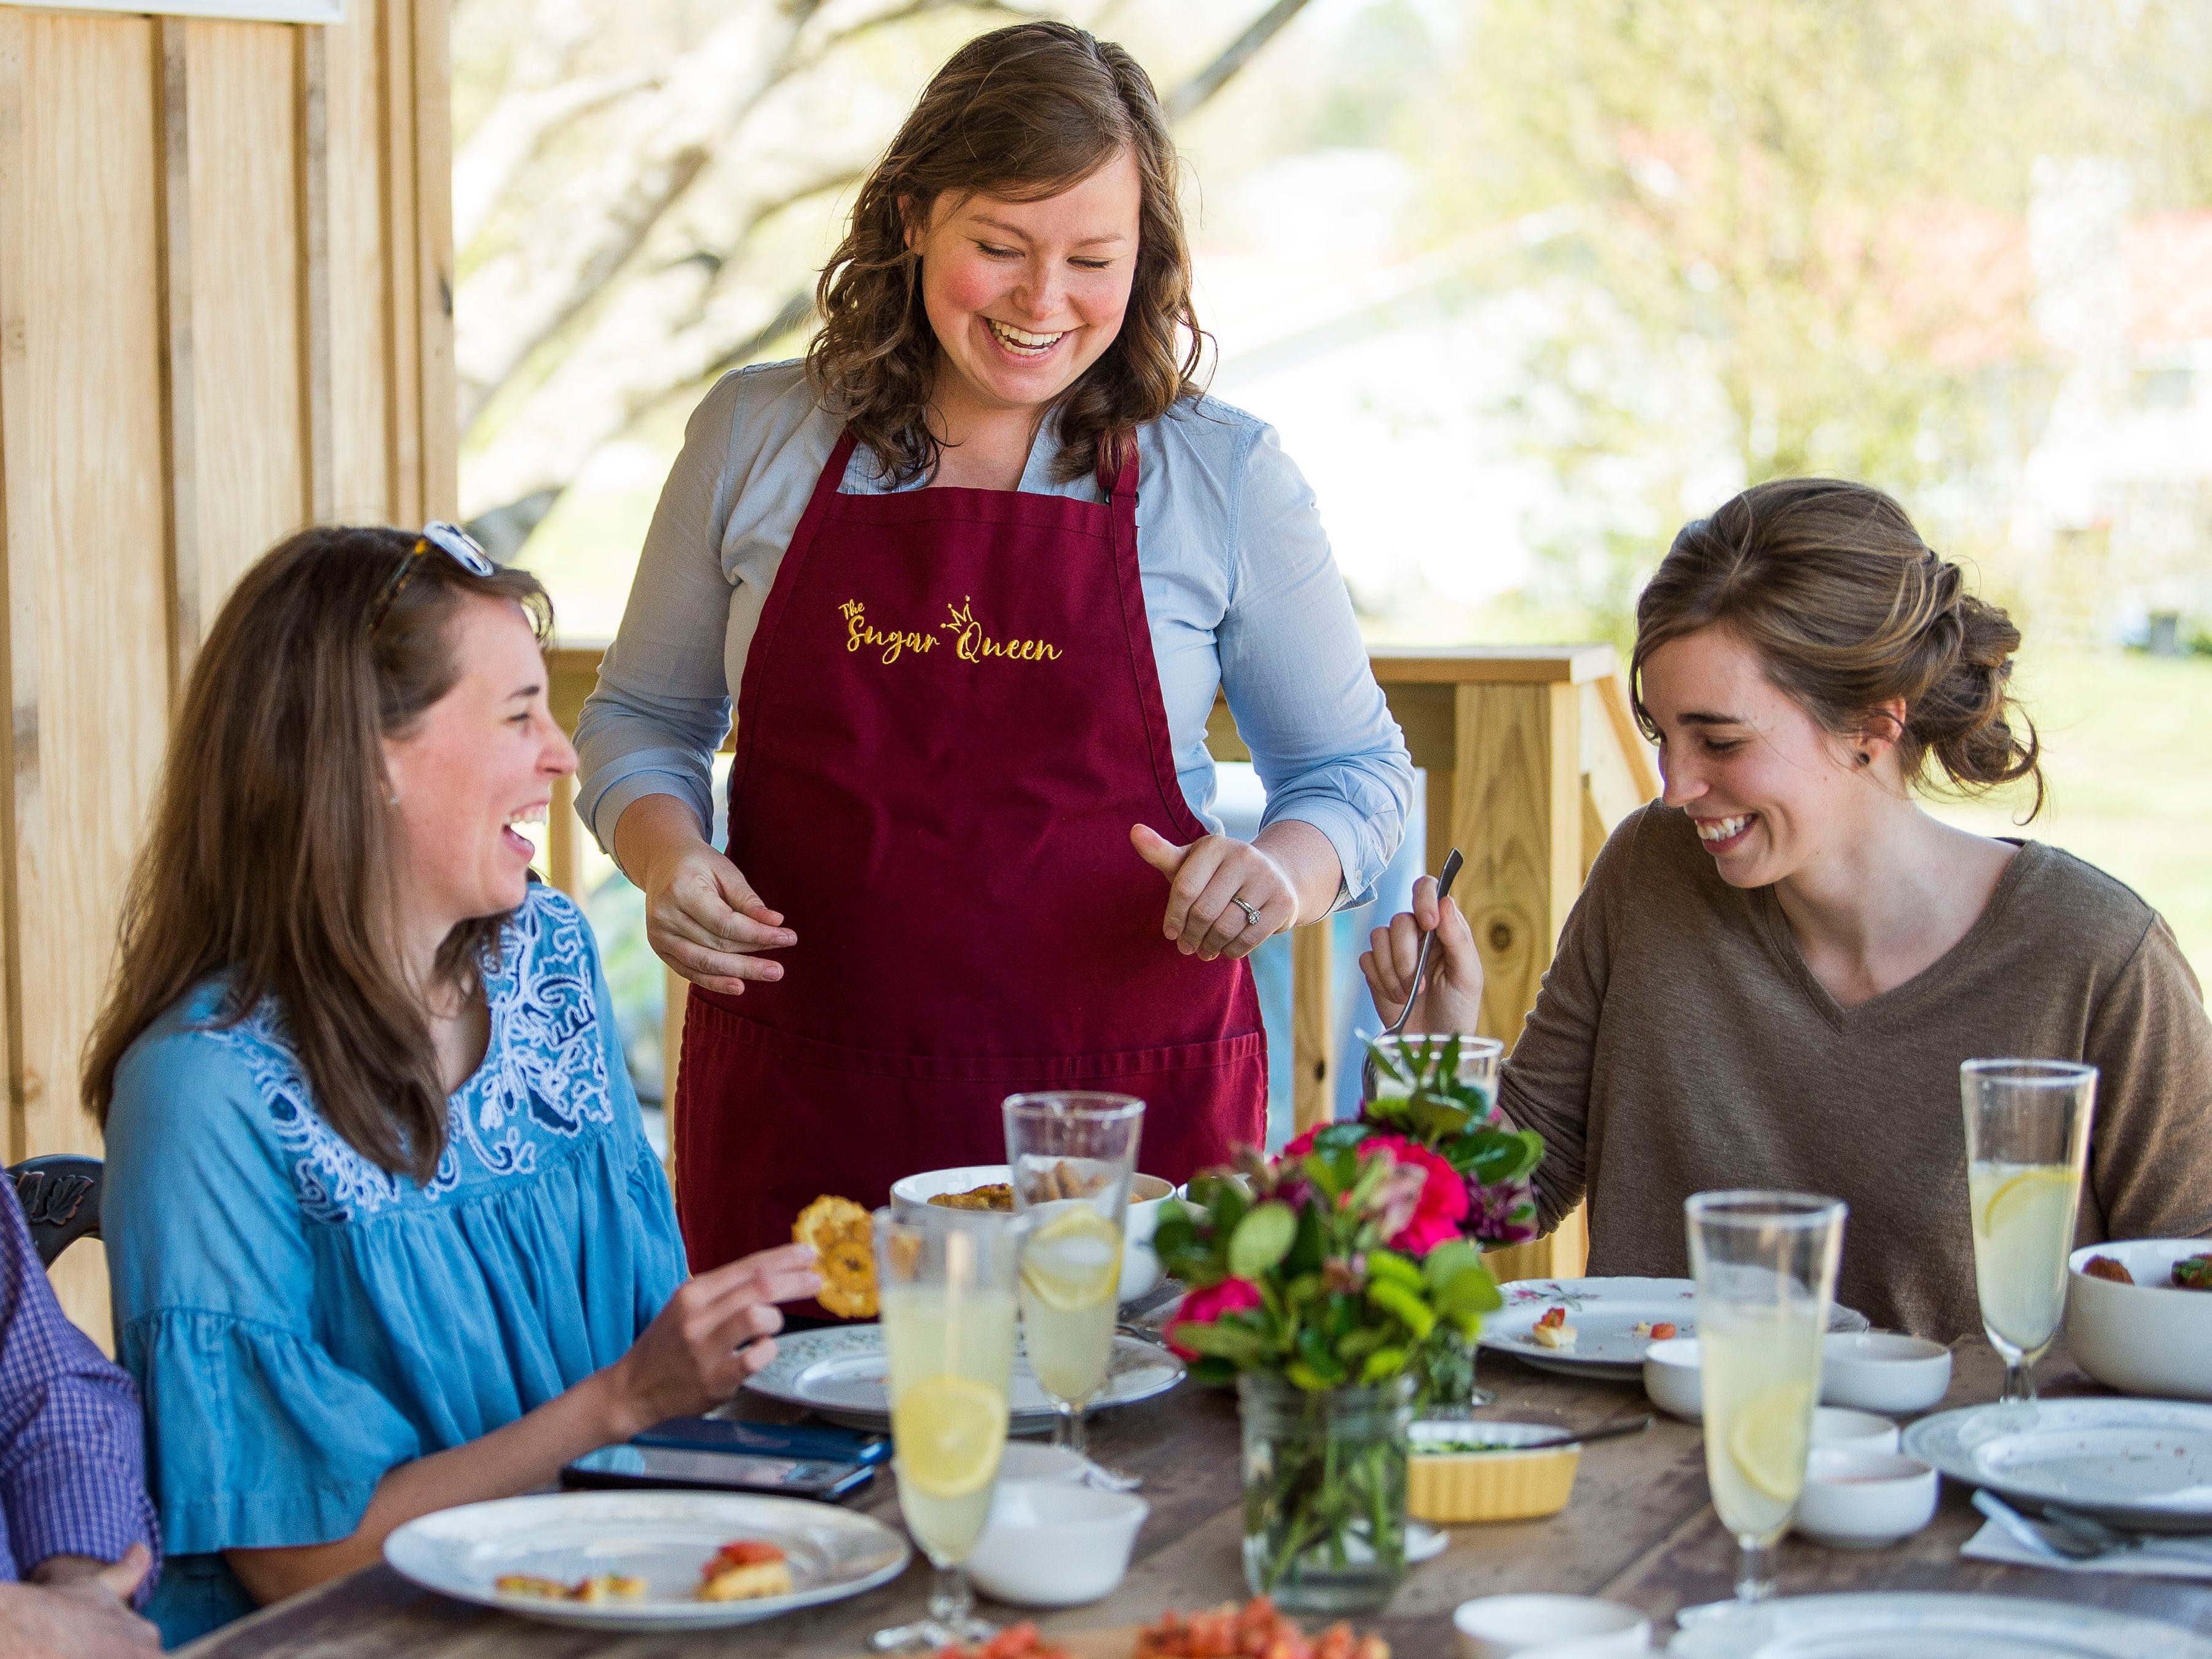 The Sugar Queen food truck's Staci Meyer, center, shares food made by the food truck during a wedding testing on Saturday, March 30, 2019.